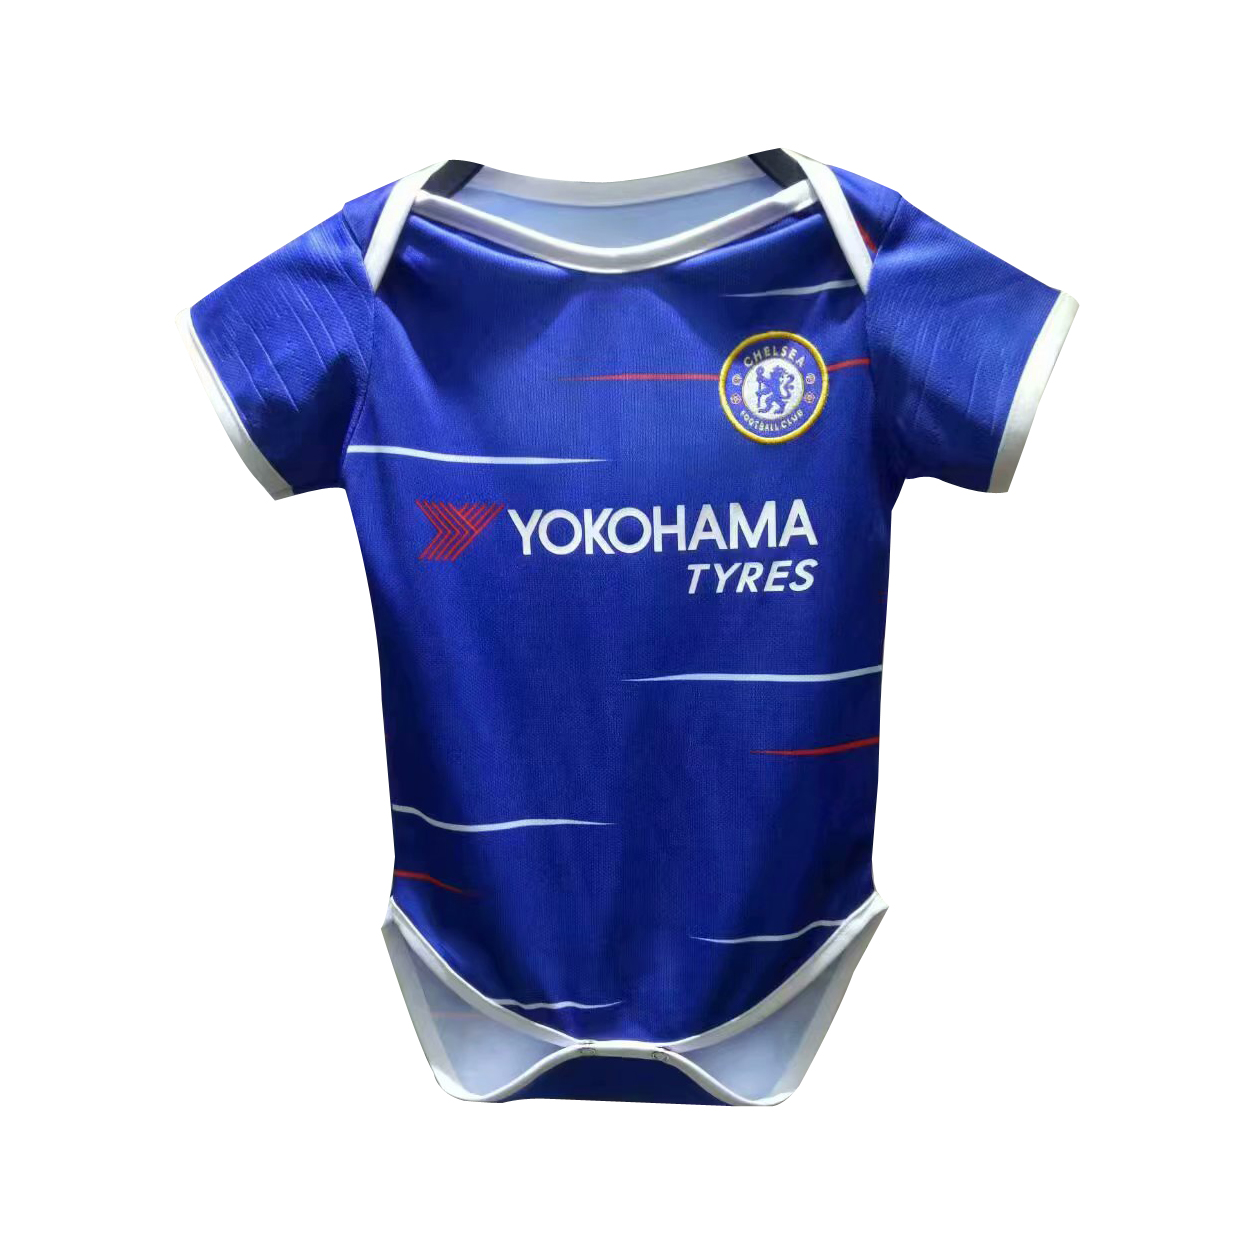 Chelsea 2018/19 Home Infant Shirt Soccer Jersey Suit